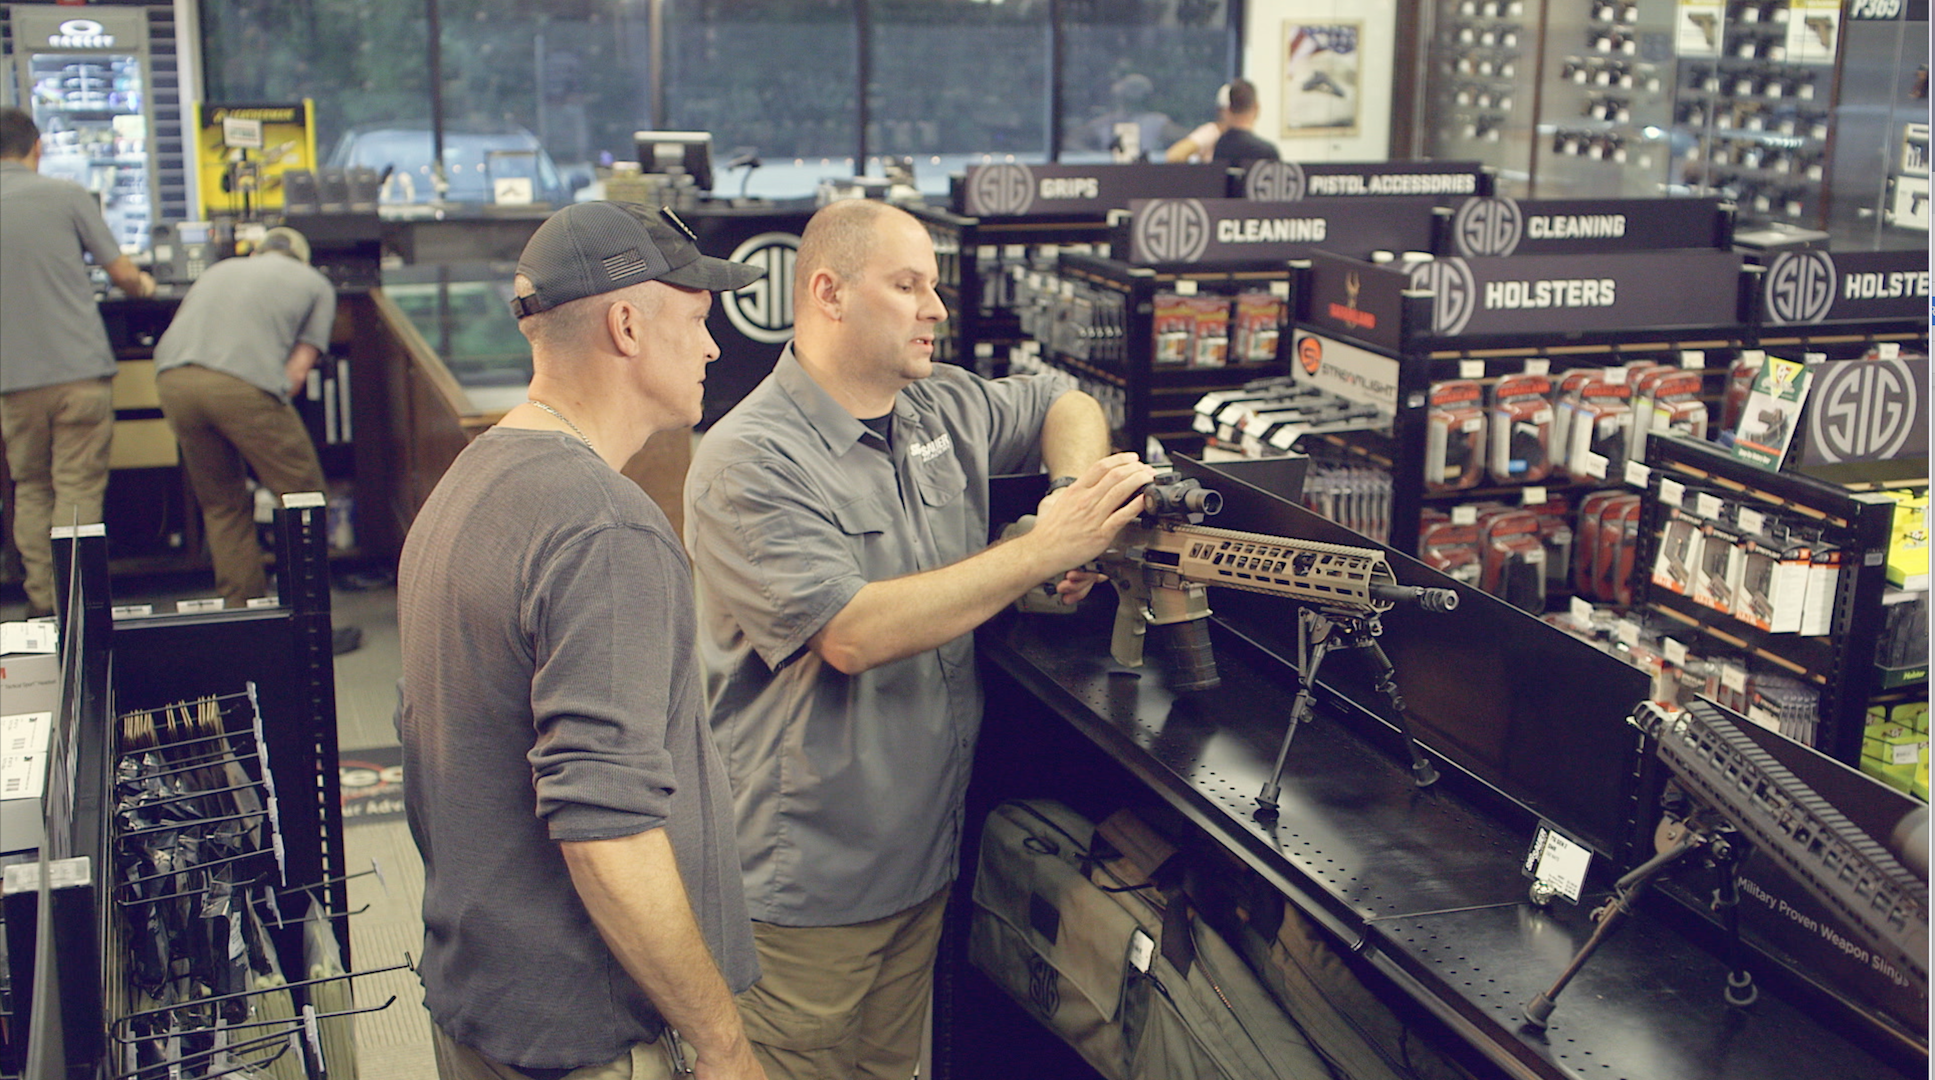 An inside view of the Sig Sauer Pro Shop